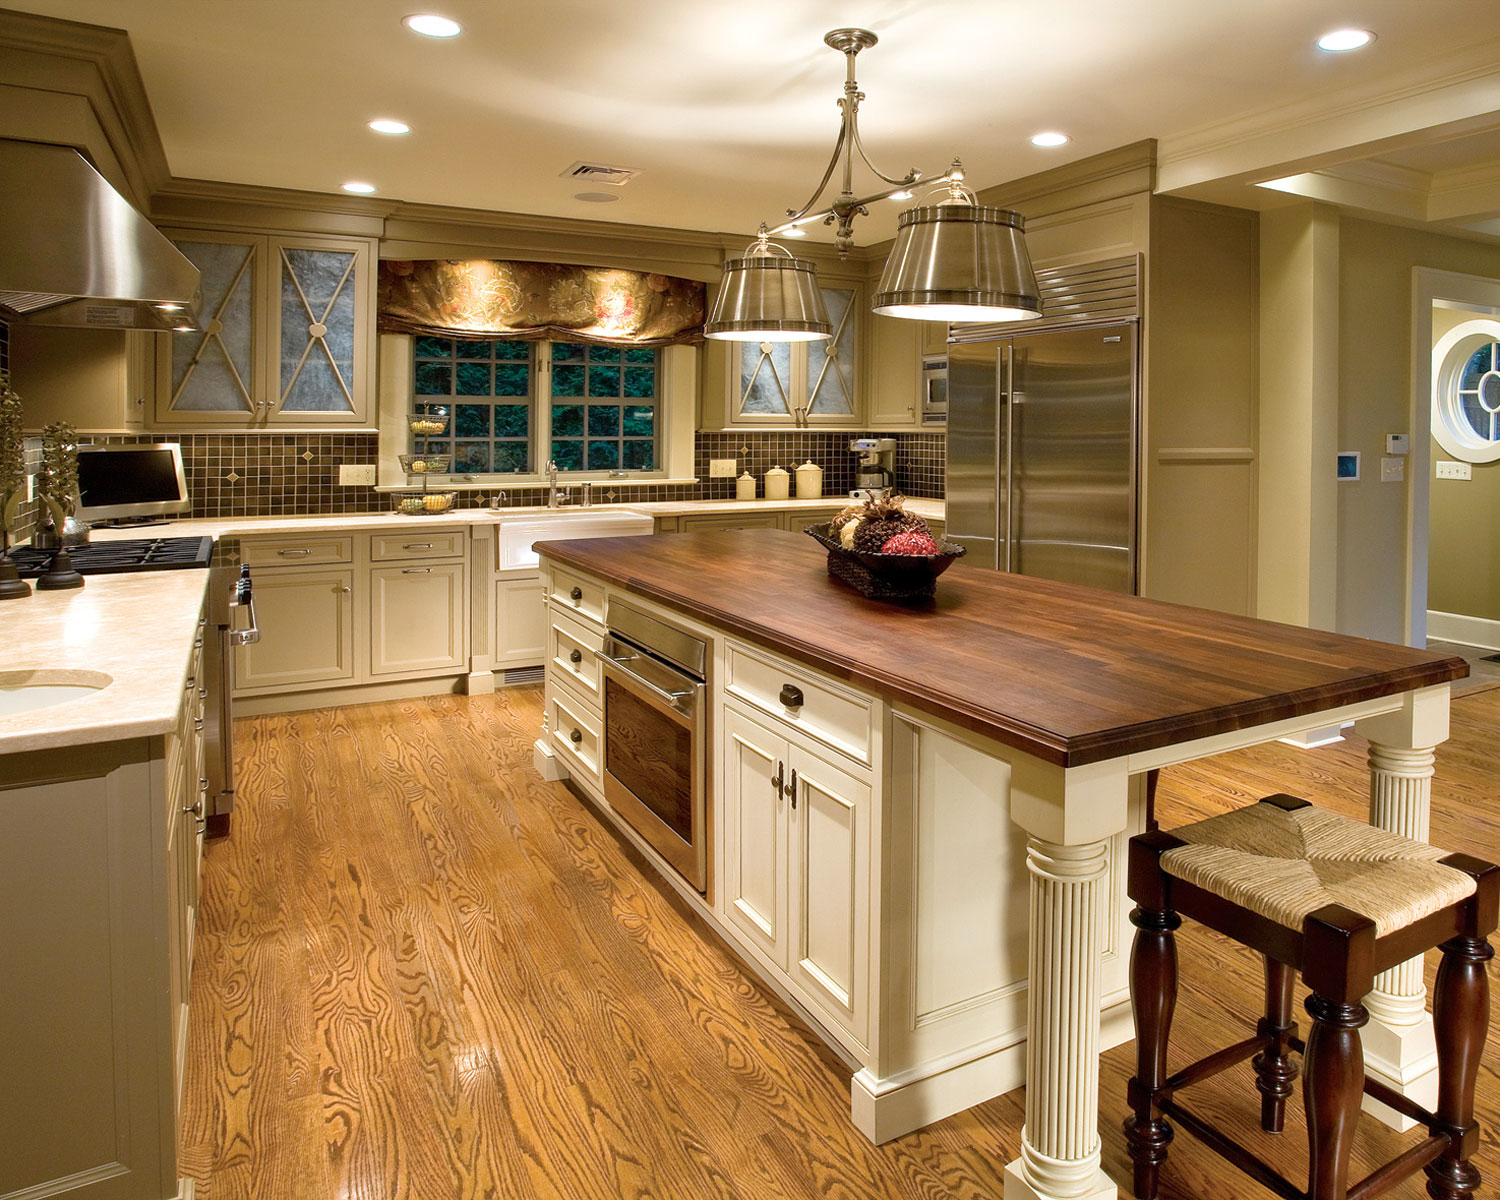 mkitchen kitchen remodeling montgomery al home about cabinets countertops